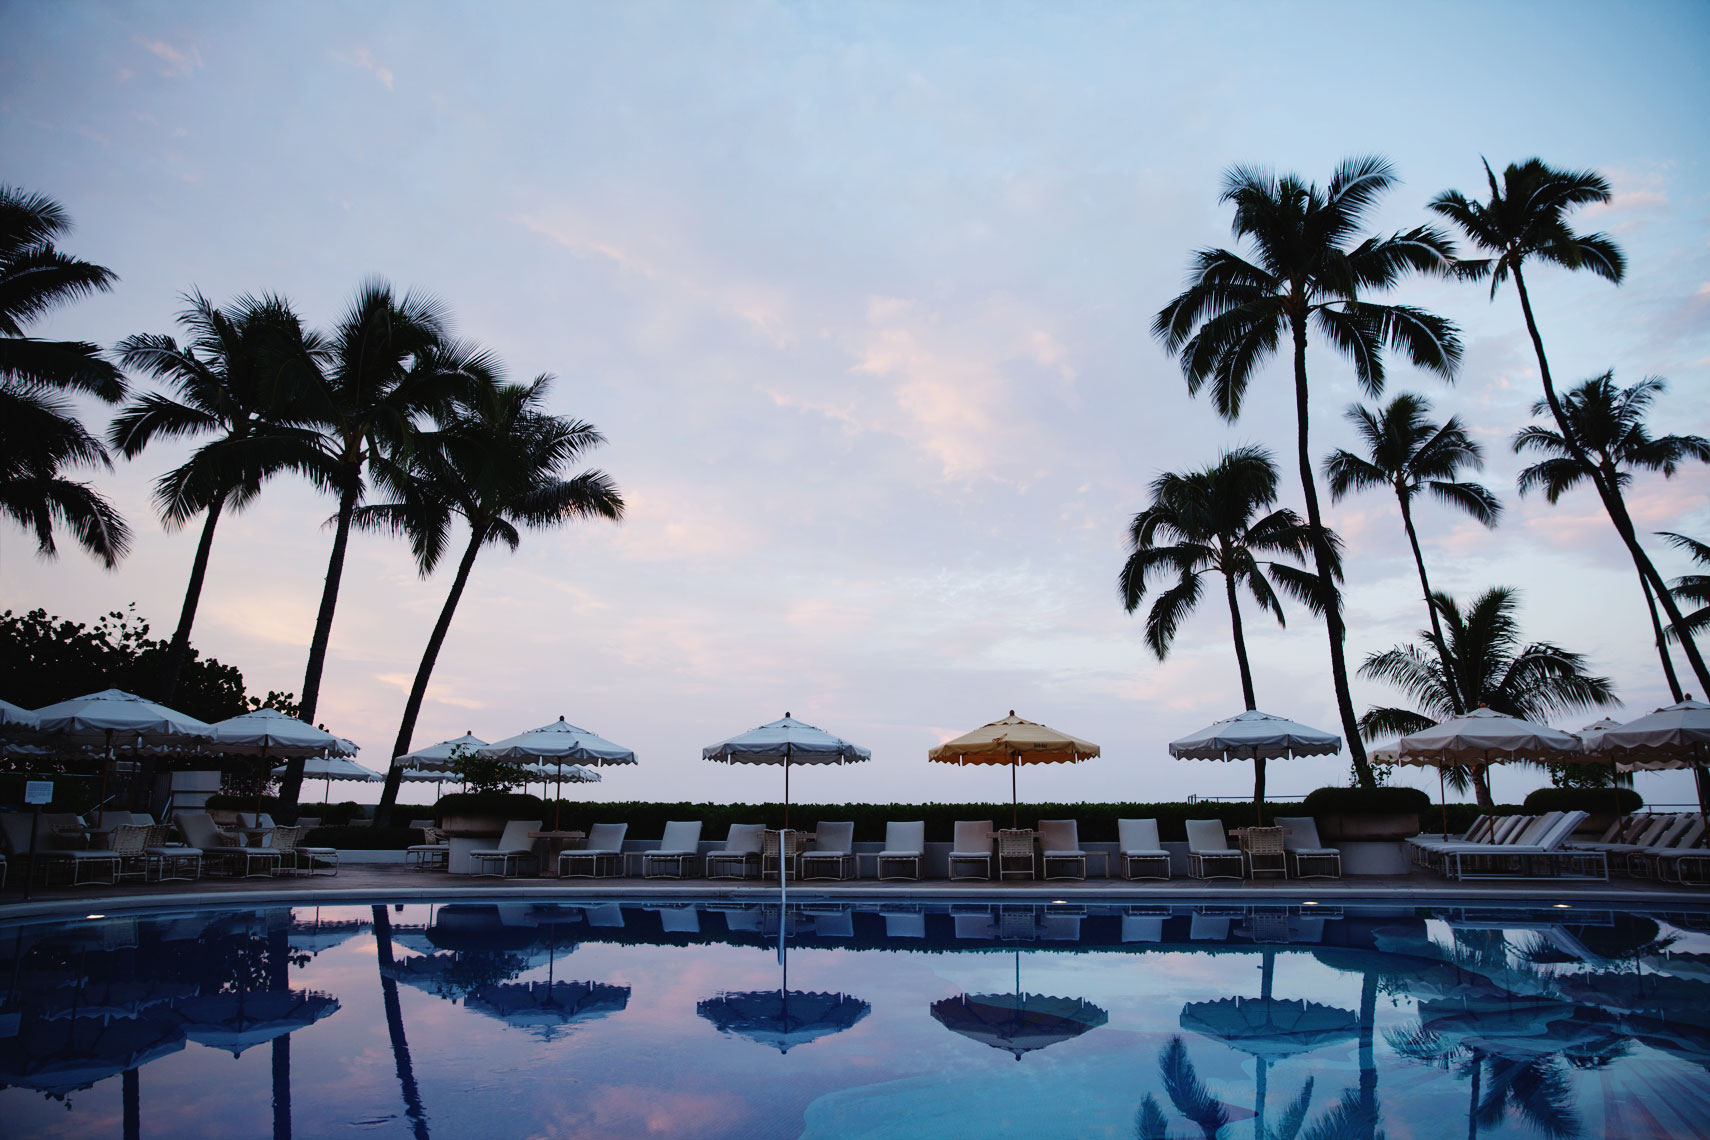 peggy-wong-photography_stories_conde-nast-traveler_halekulani-hotel_oahu_honolulu_7076